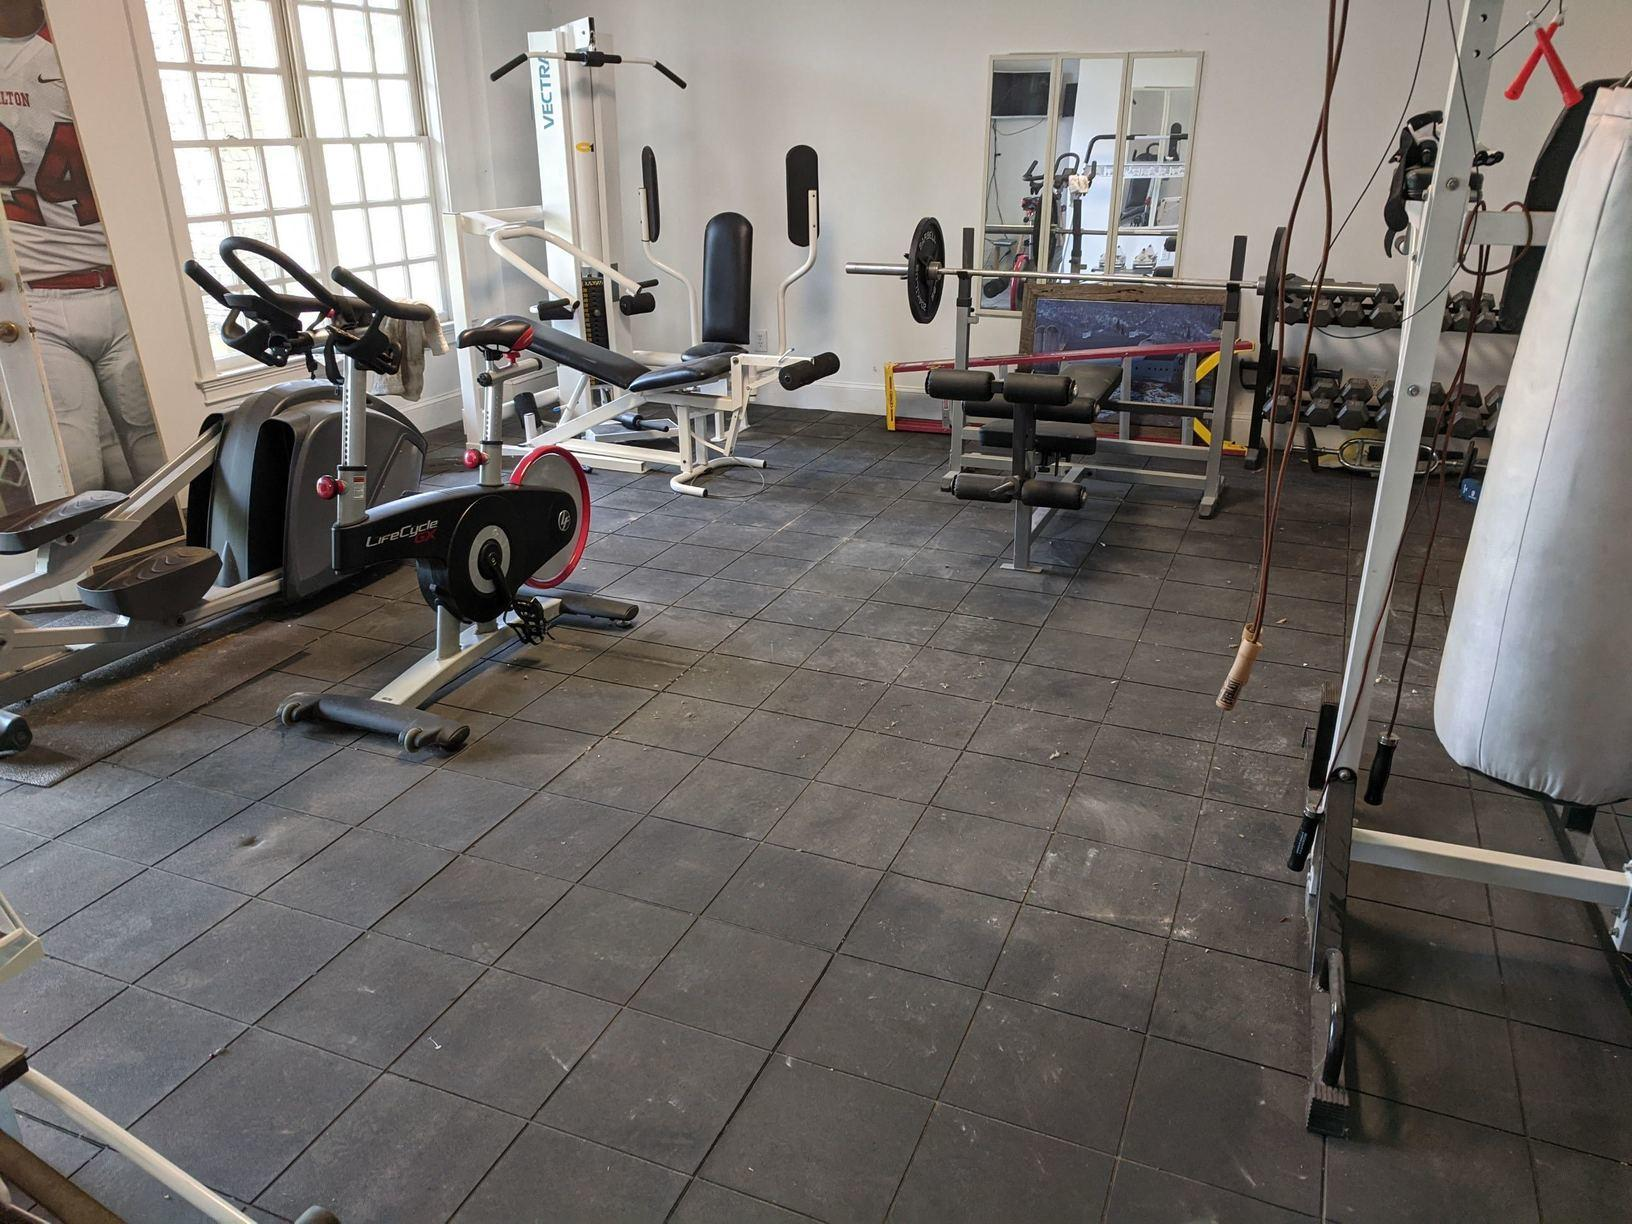 Exercise Equipment Removal in Alpharetta, GA - After Photo